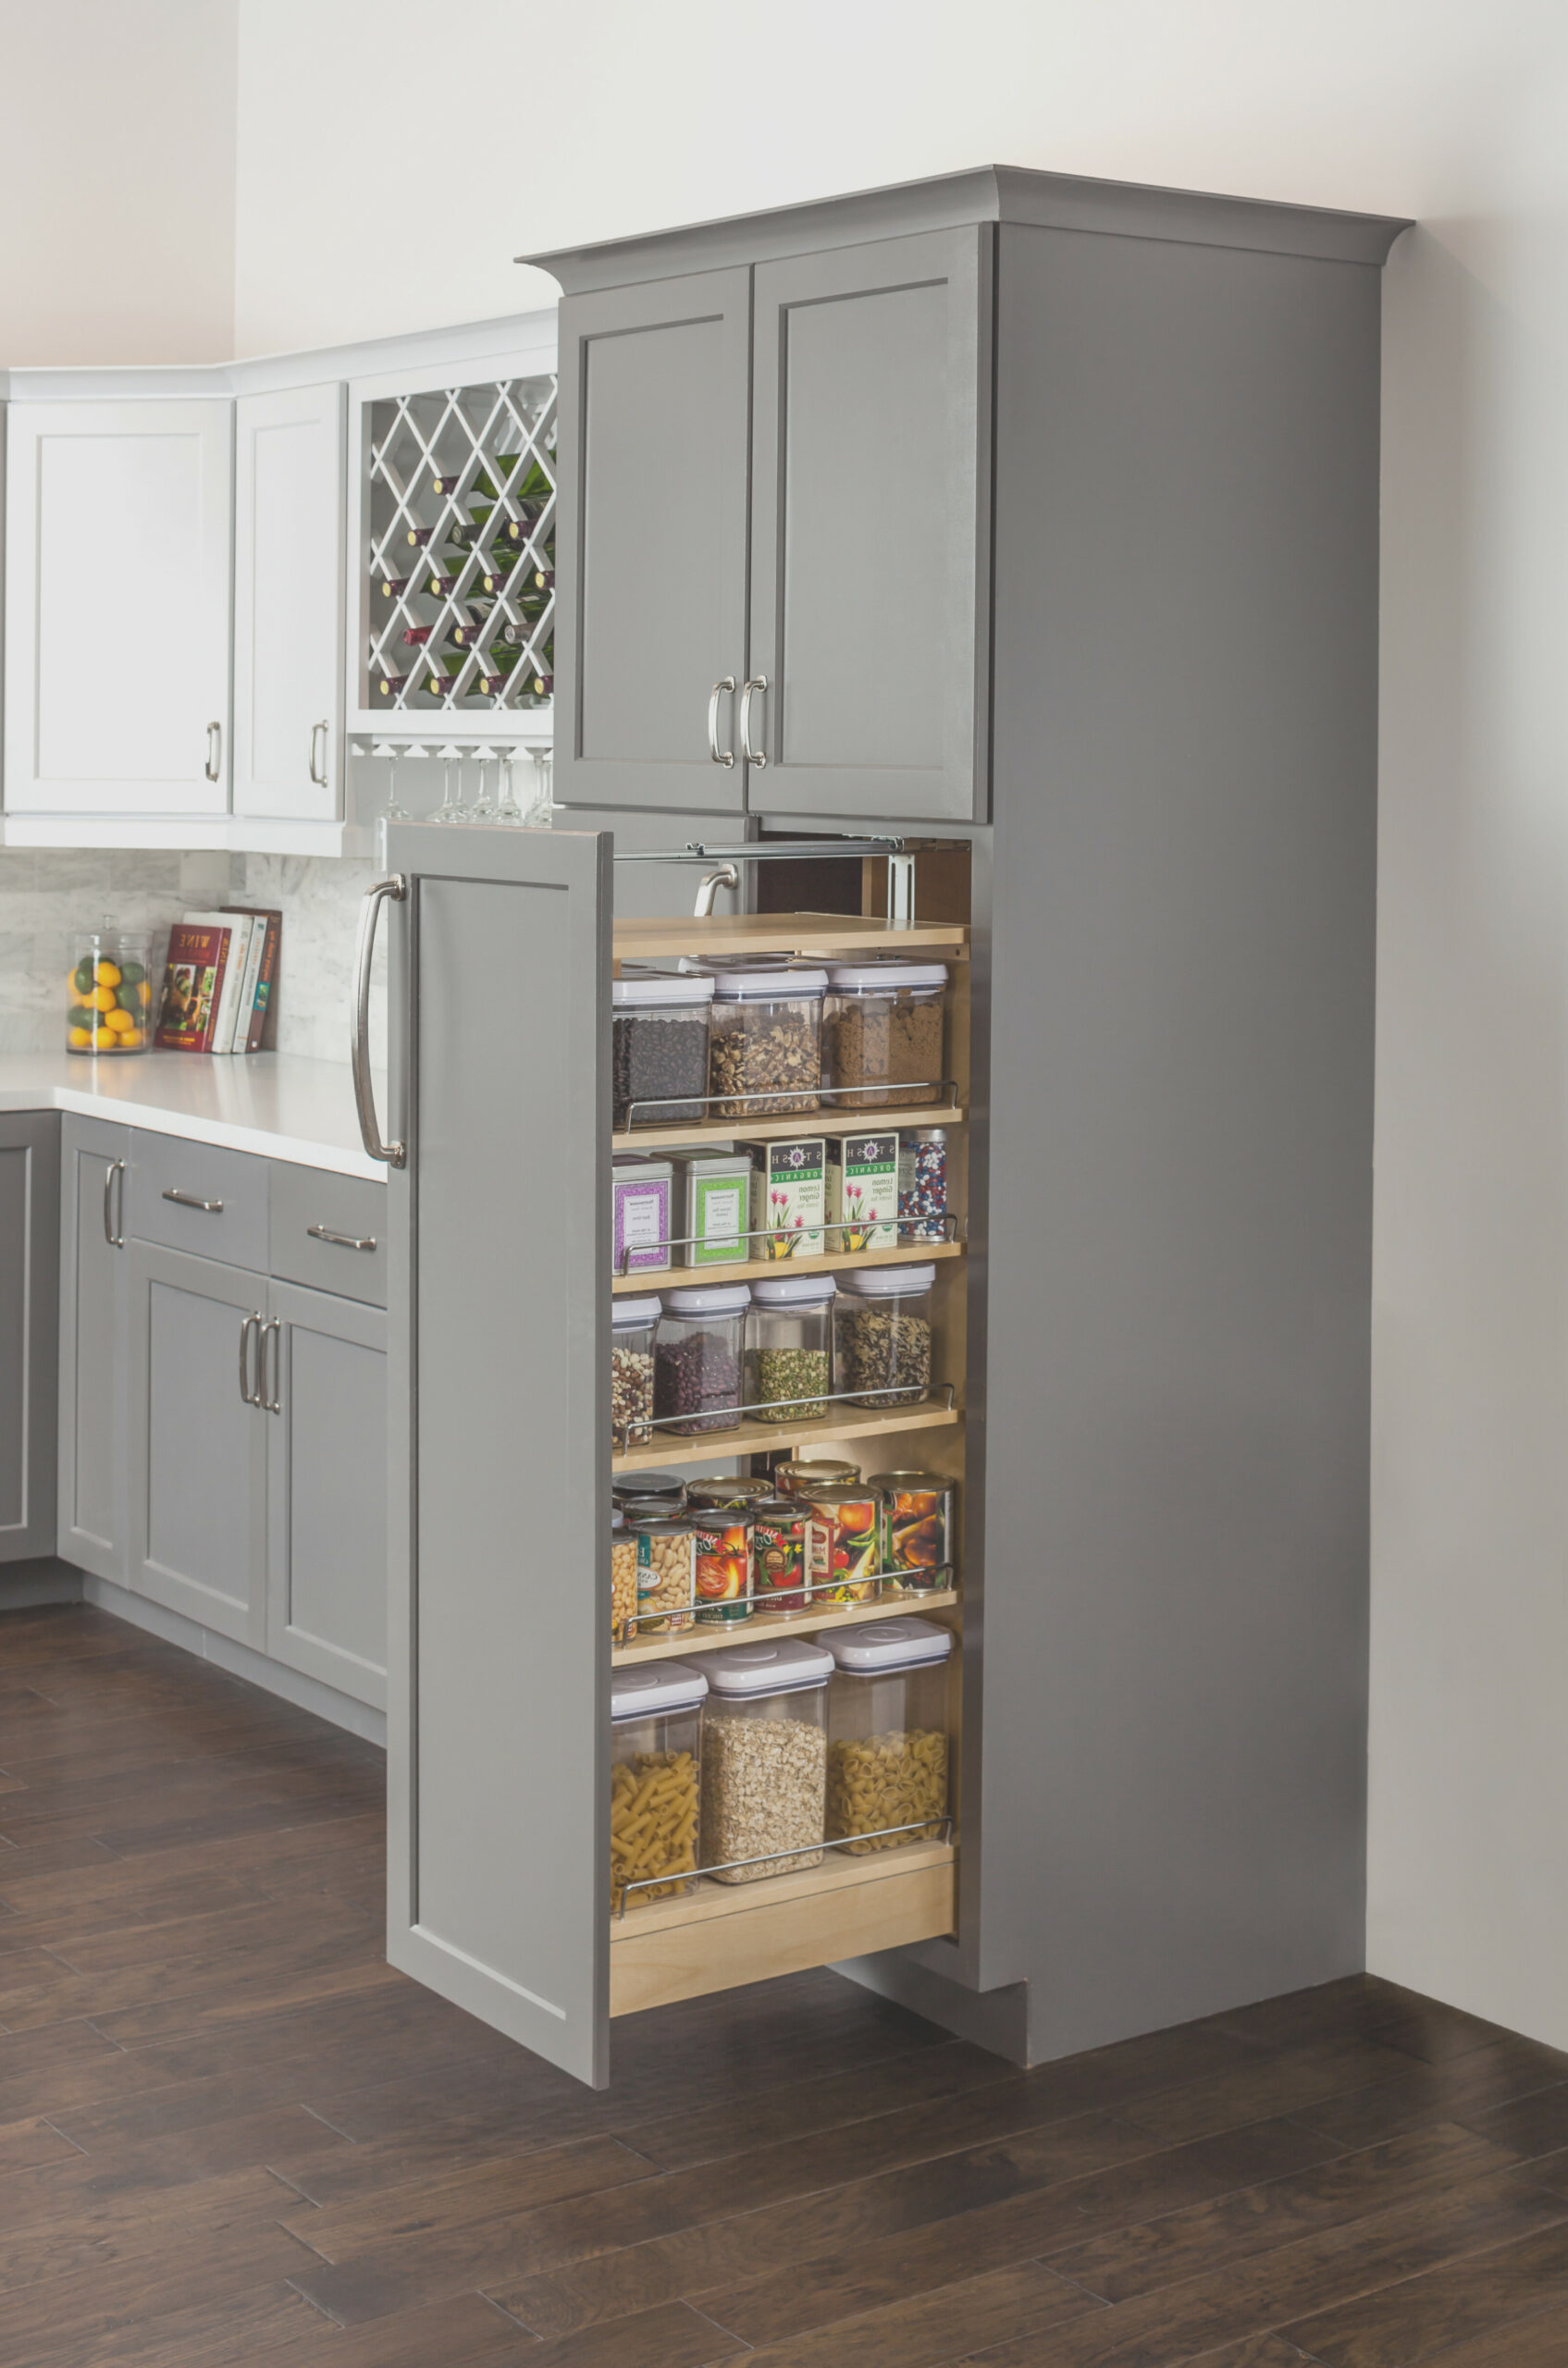 Pantry Cabinet With Slide Out Shelves